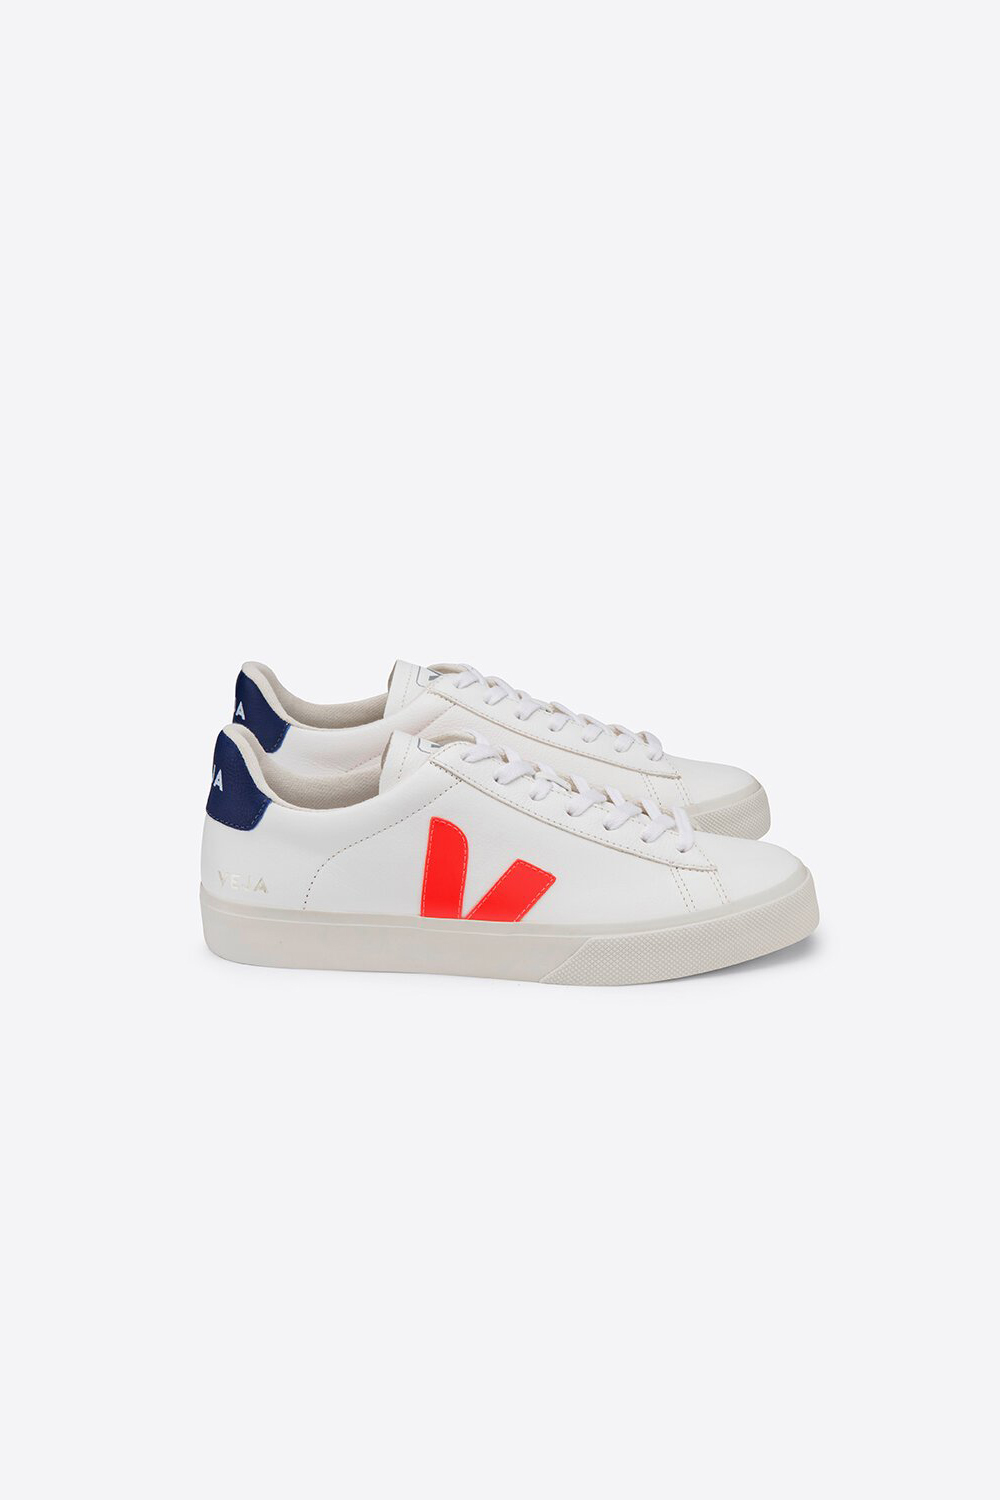 Veja Campo Chromefree Leather - White Orange Fluo Cobalt